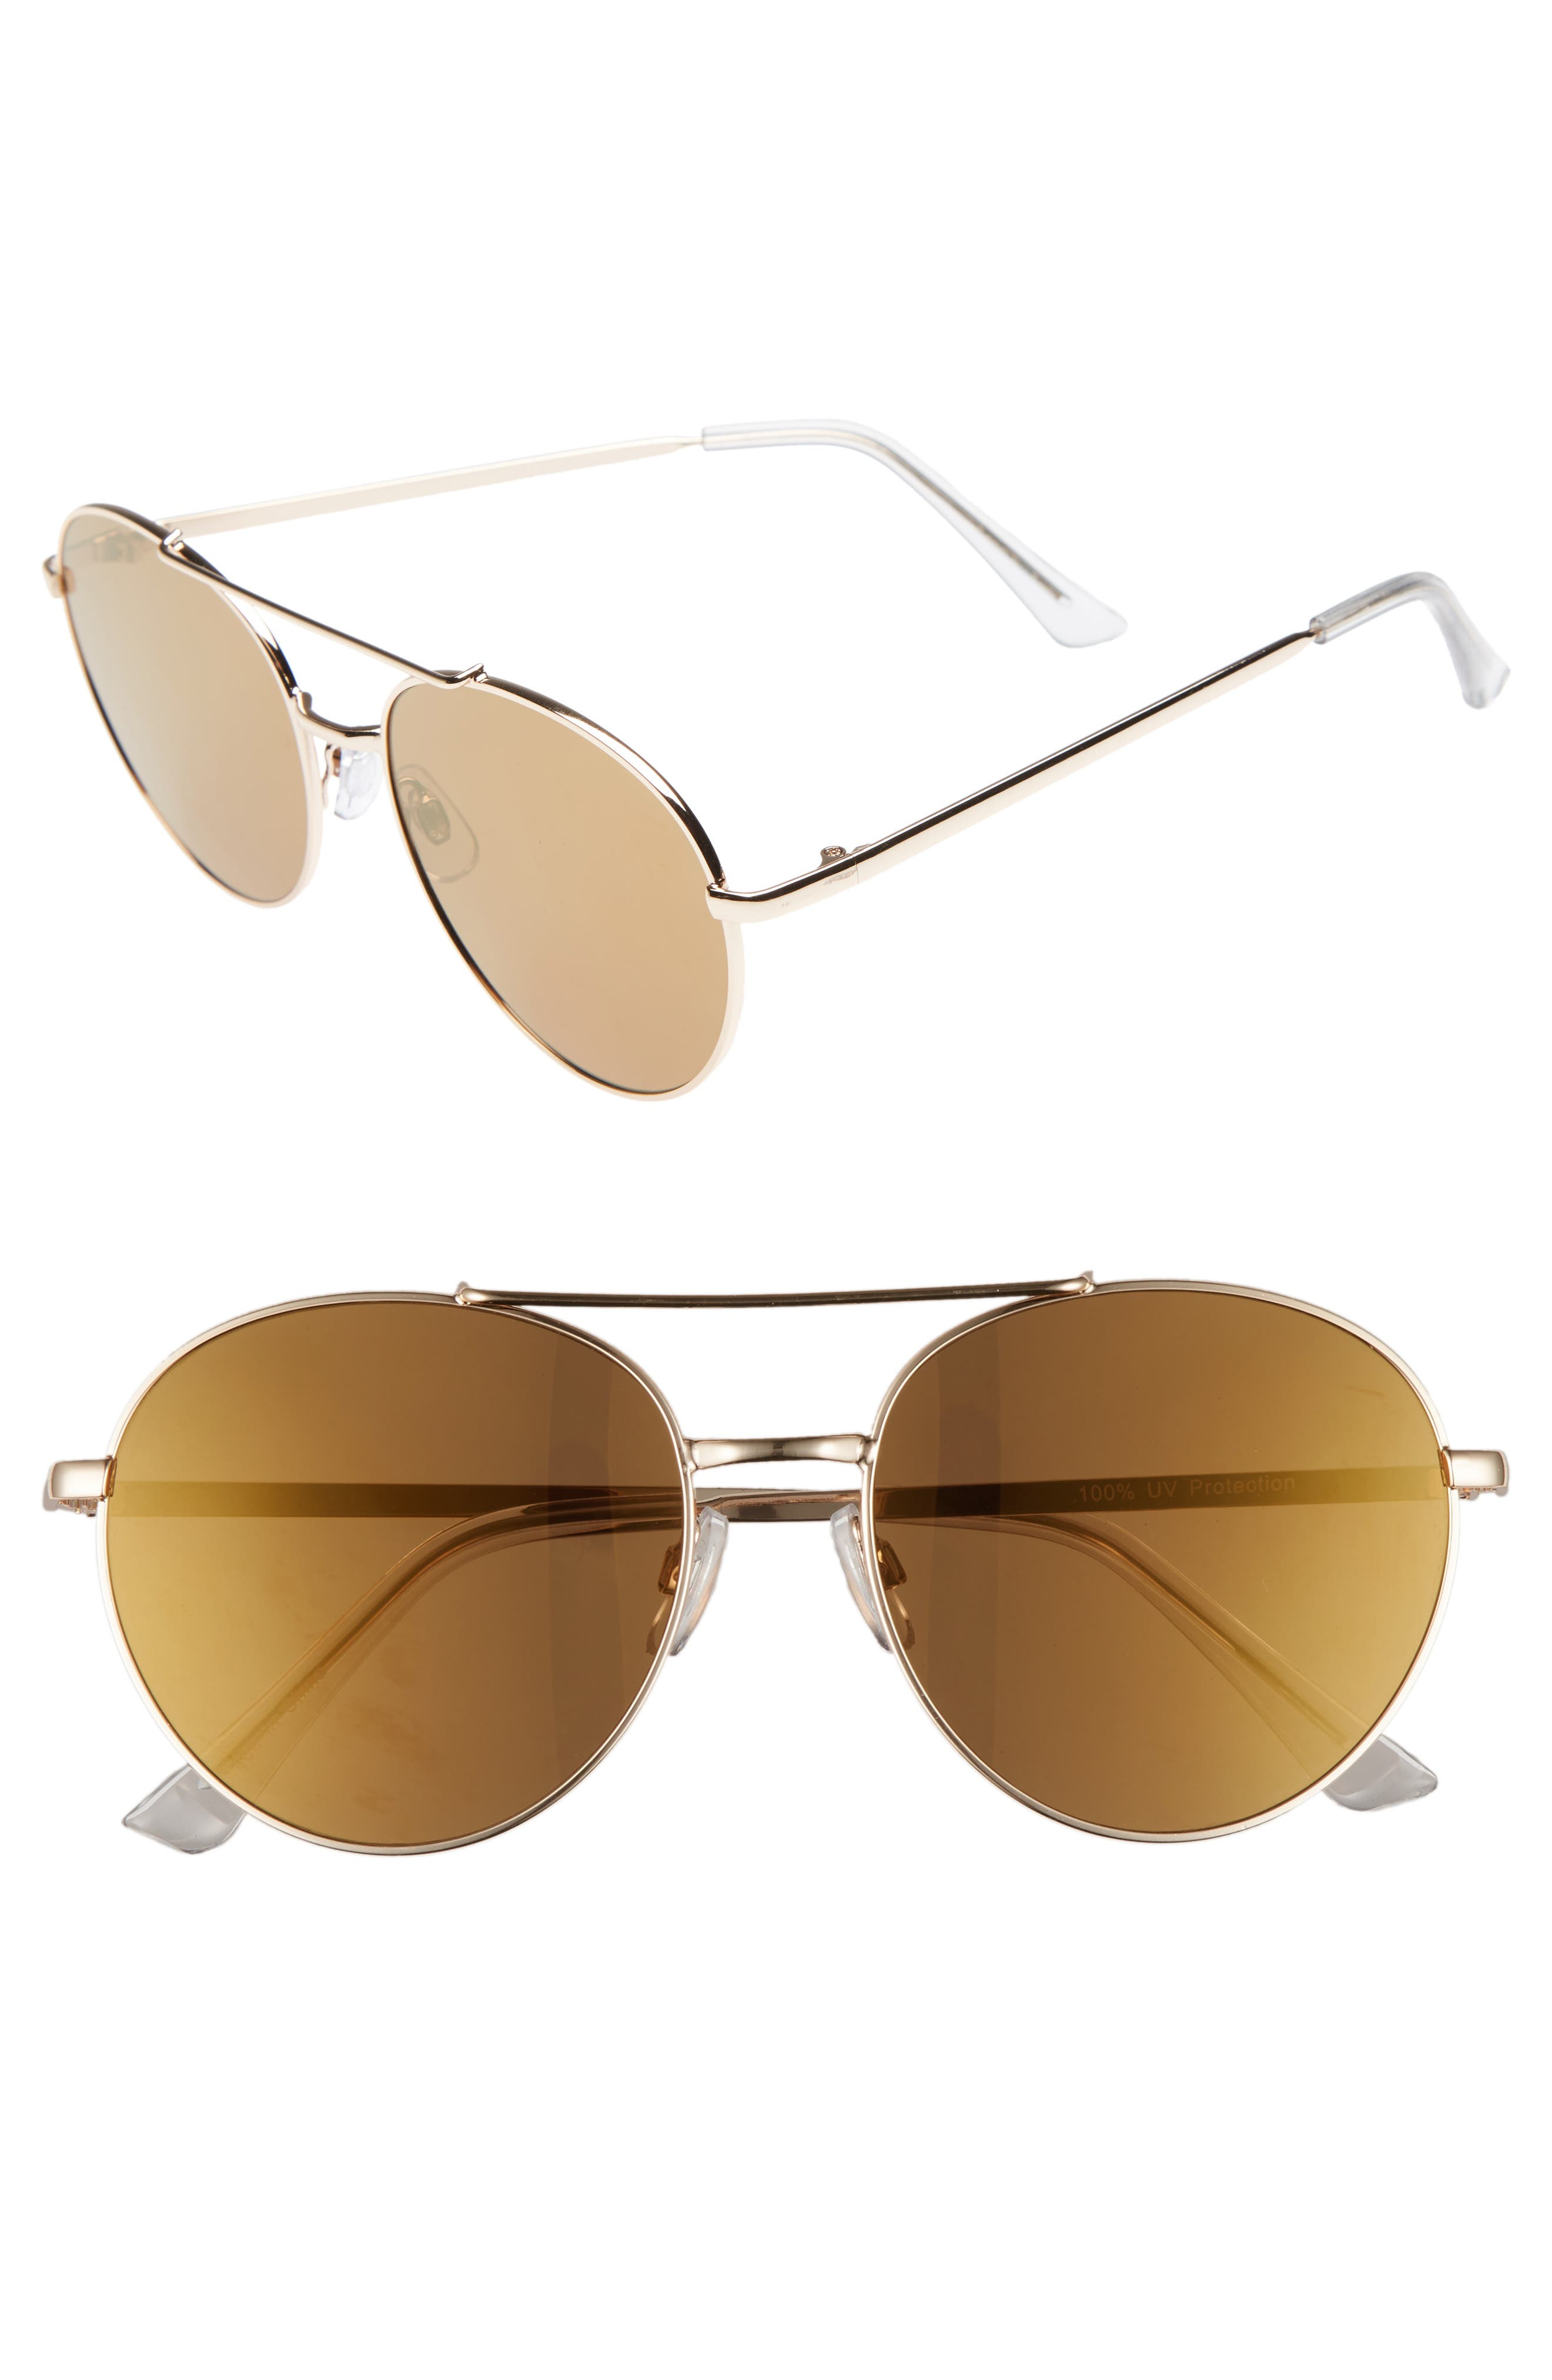 Lucky Seven 55mm Metal Aviator Sunglasses,                         Main,                         color, Gold/ Gold